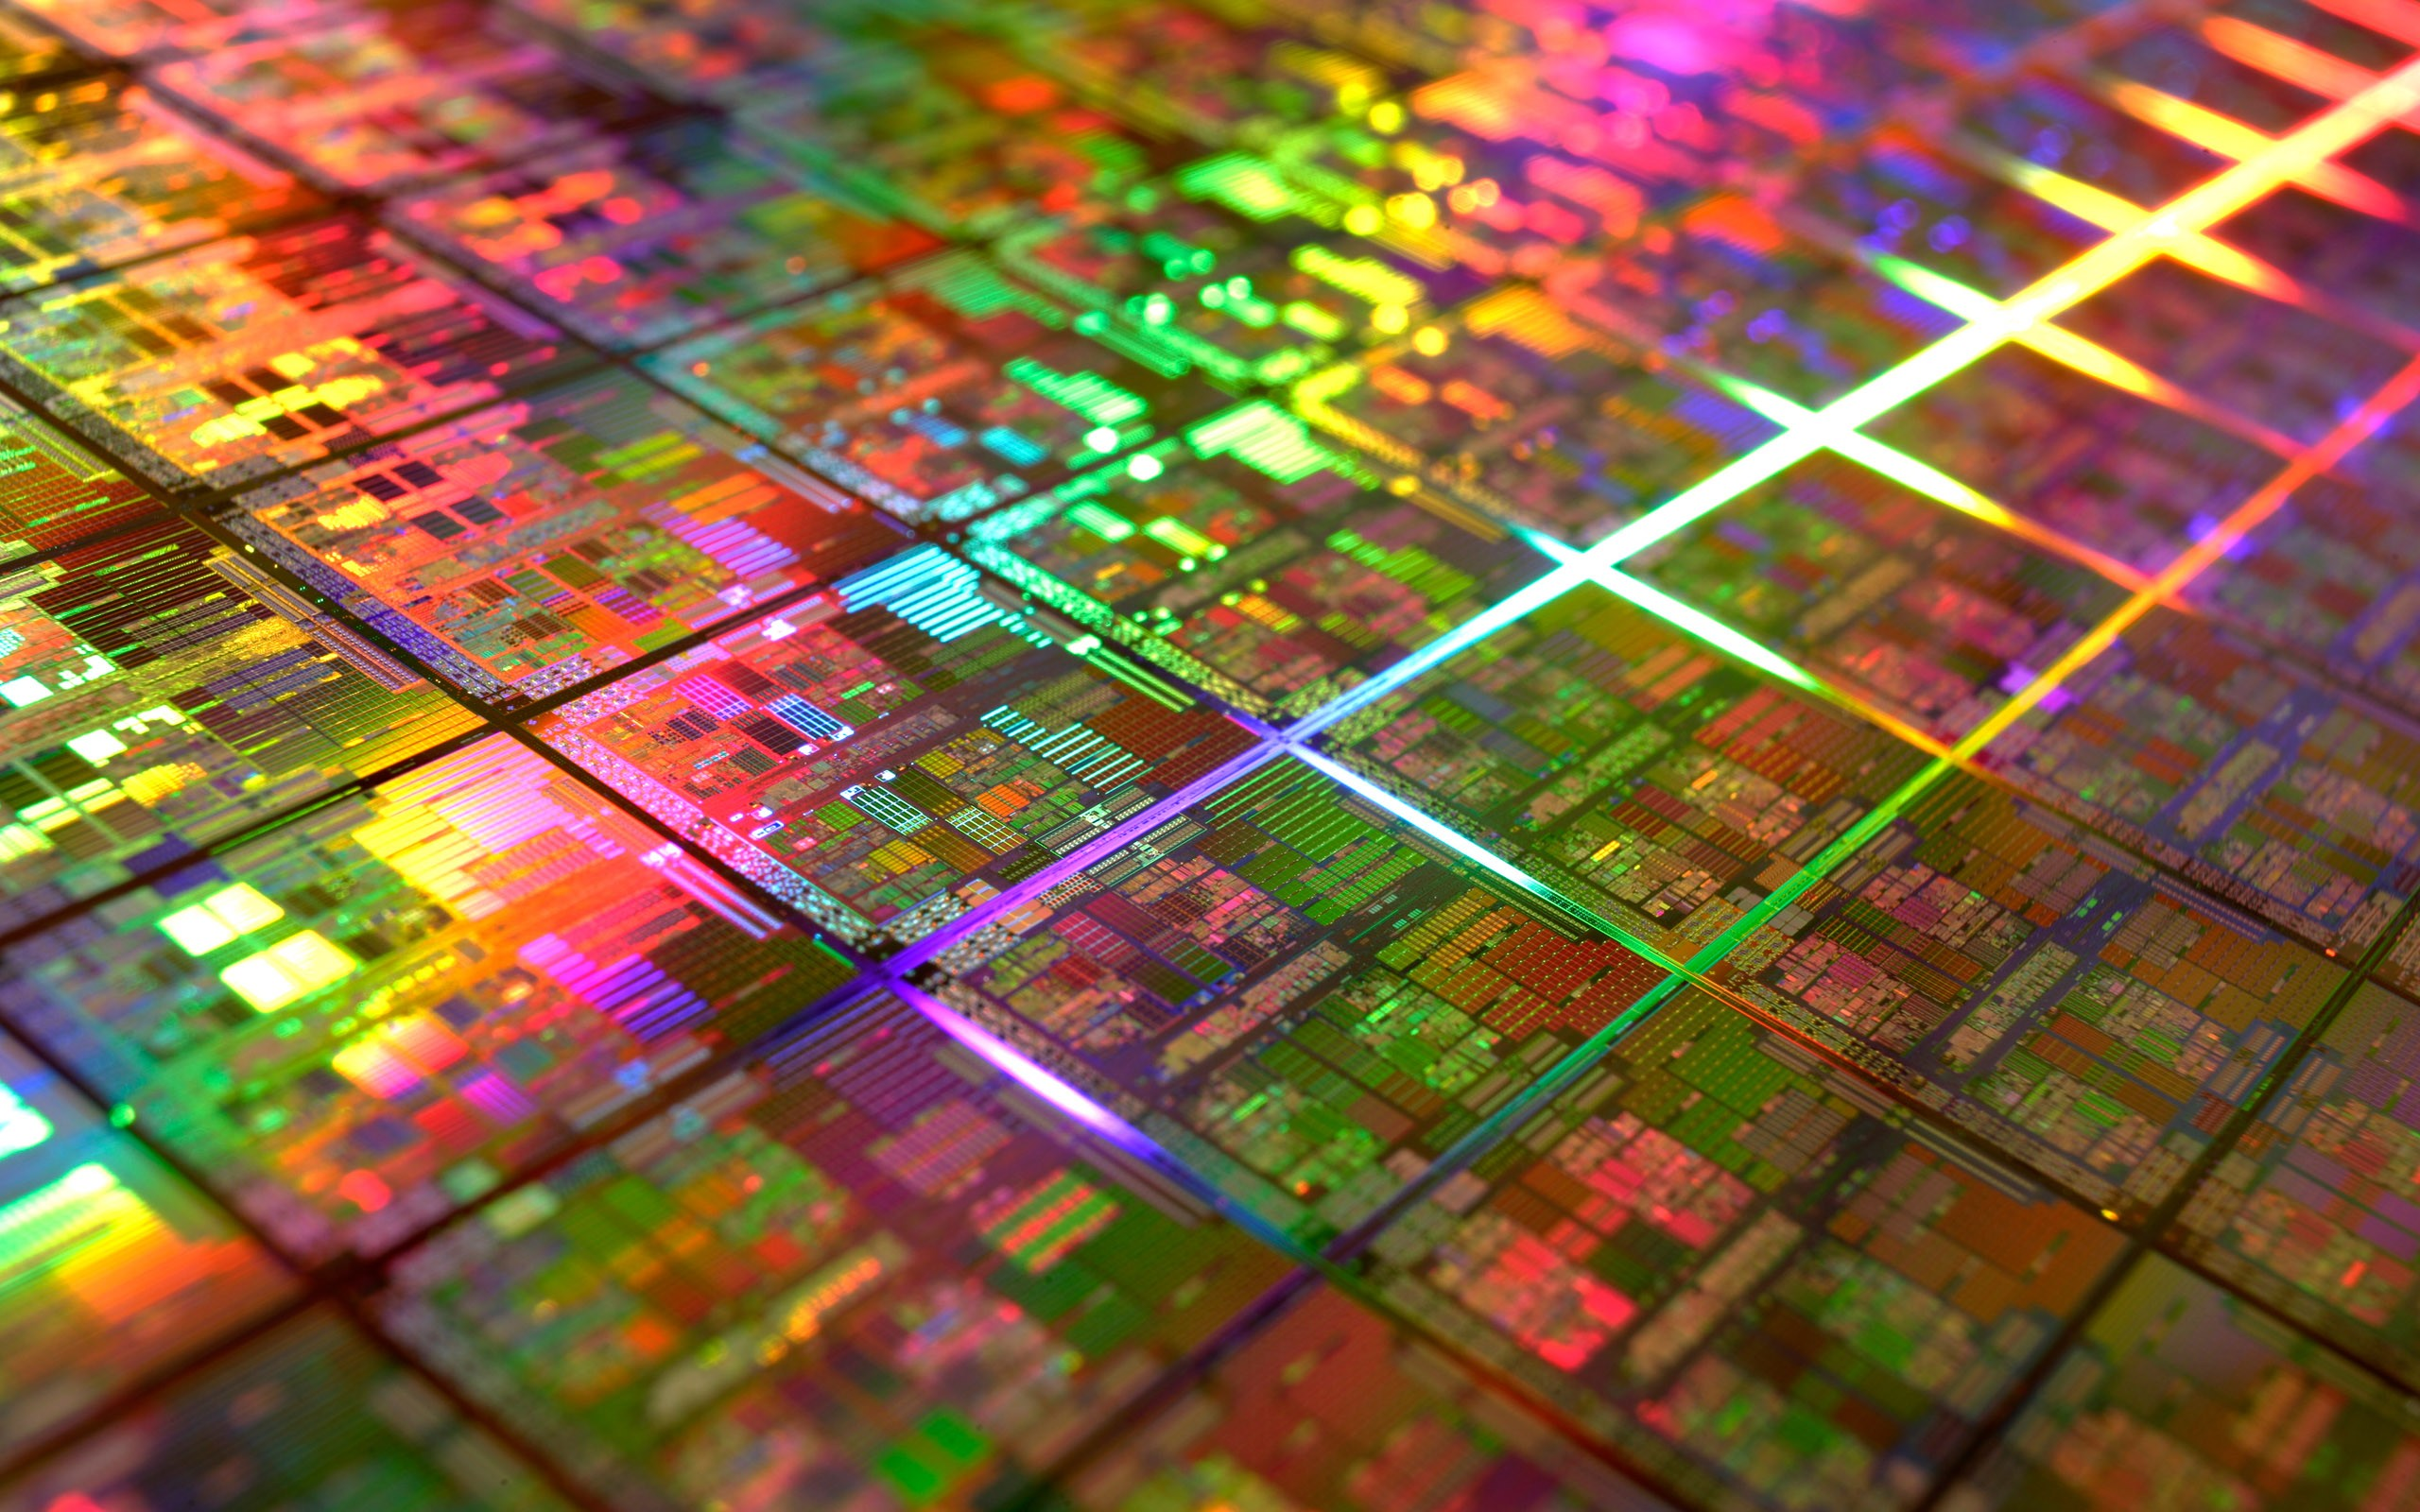 General 2560x1600 circuits wafer silicon colorful microchip technology geometry IT CPU photography